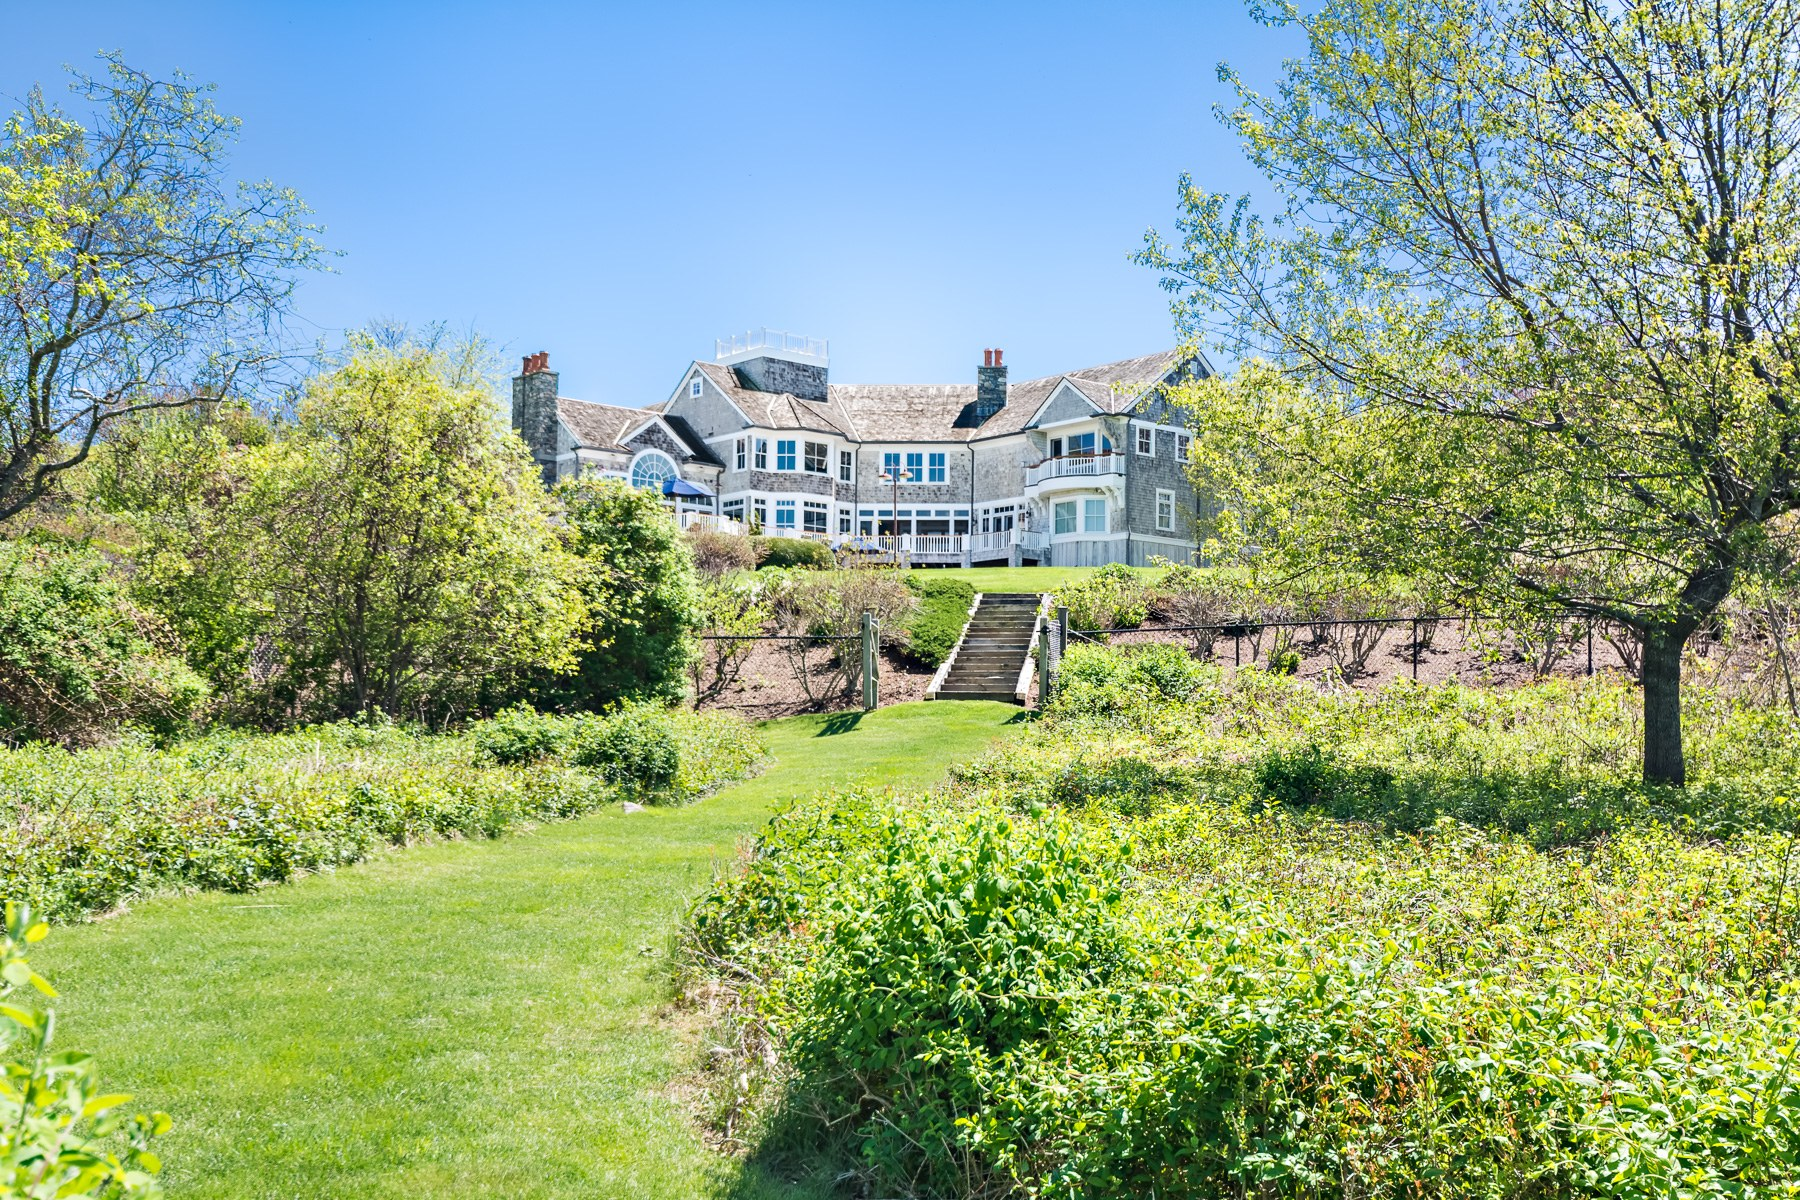 Additional photo for property listing at 90 Battery Lane Jamestown, Rhode Island 02835 United States